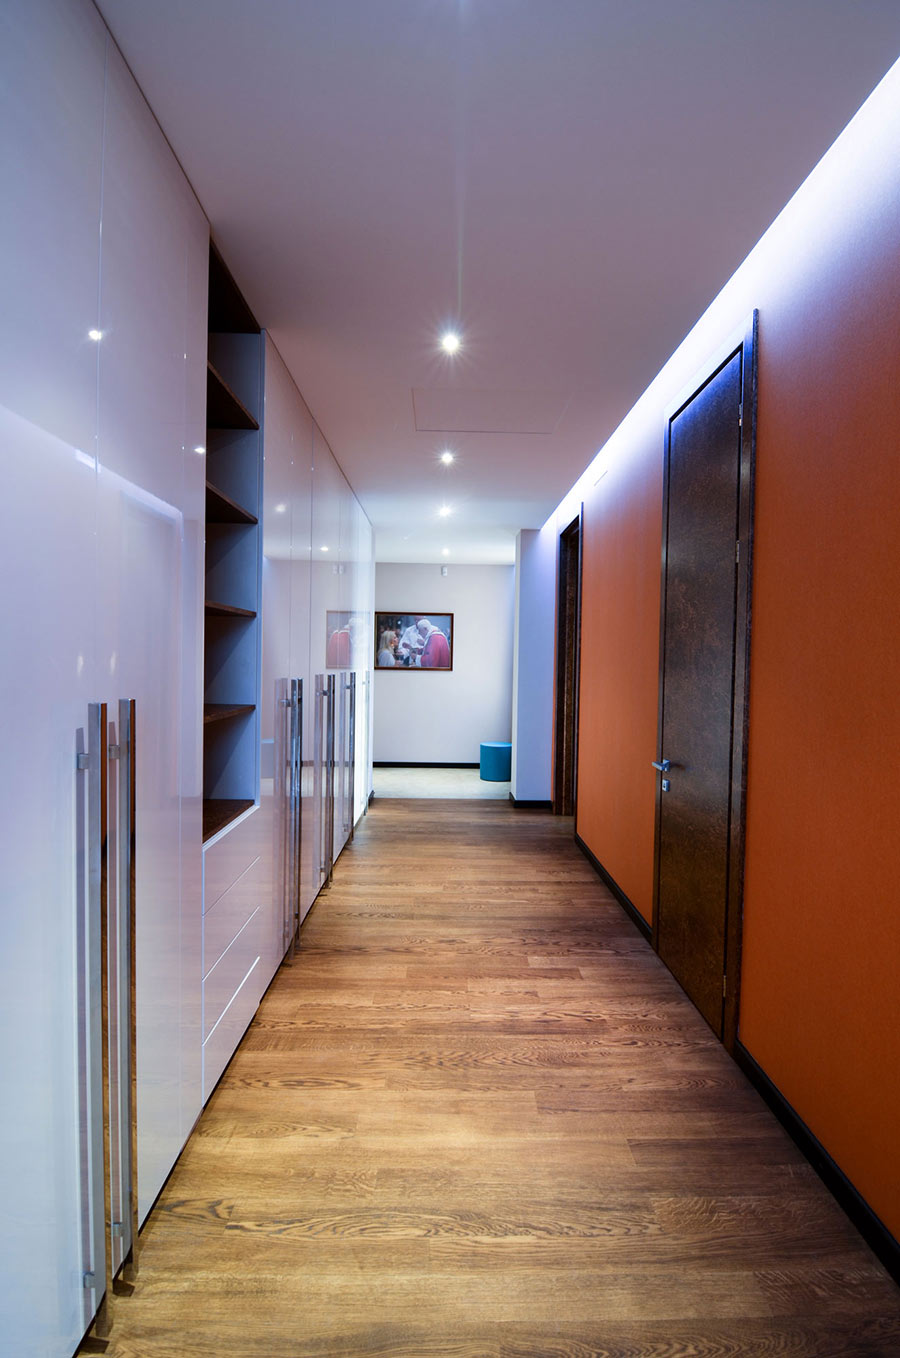 Residential Foyer Lighting : Hallway orange walls large family residence in kiev ukraine